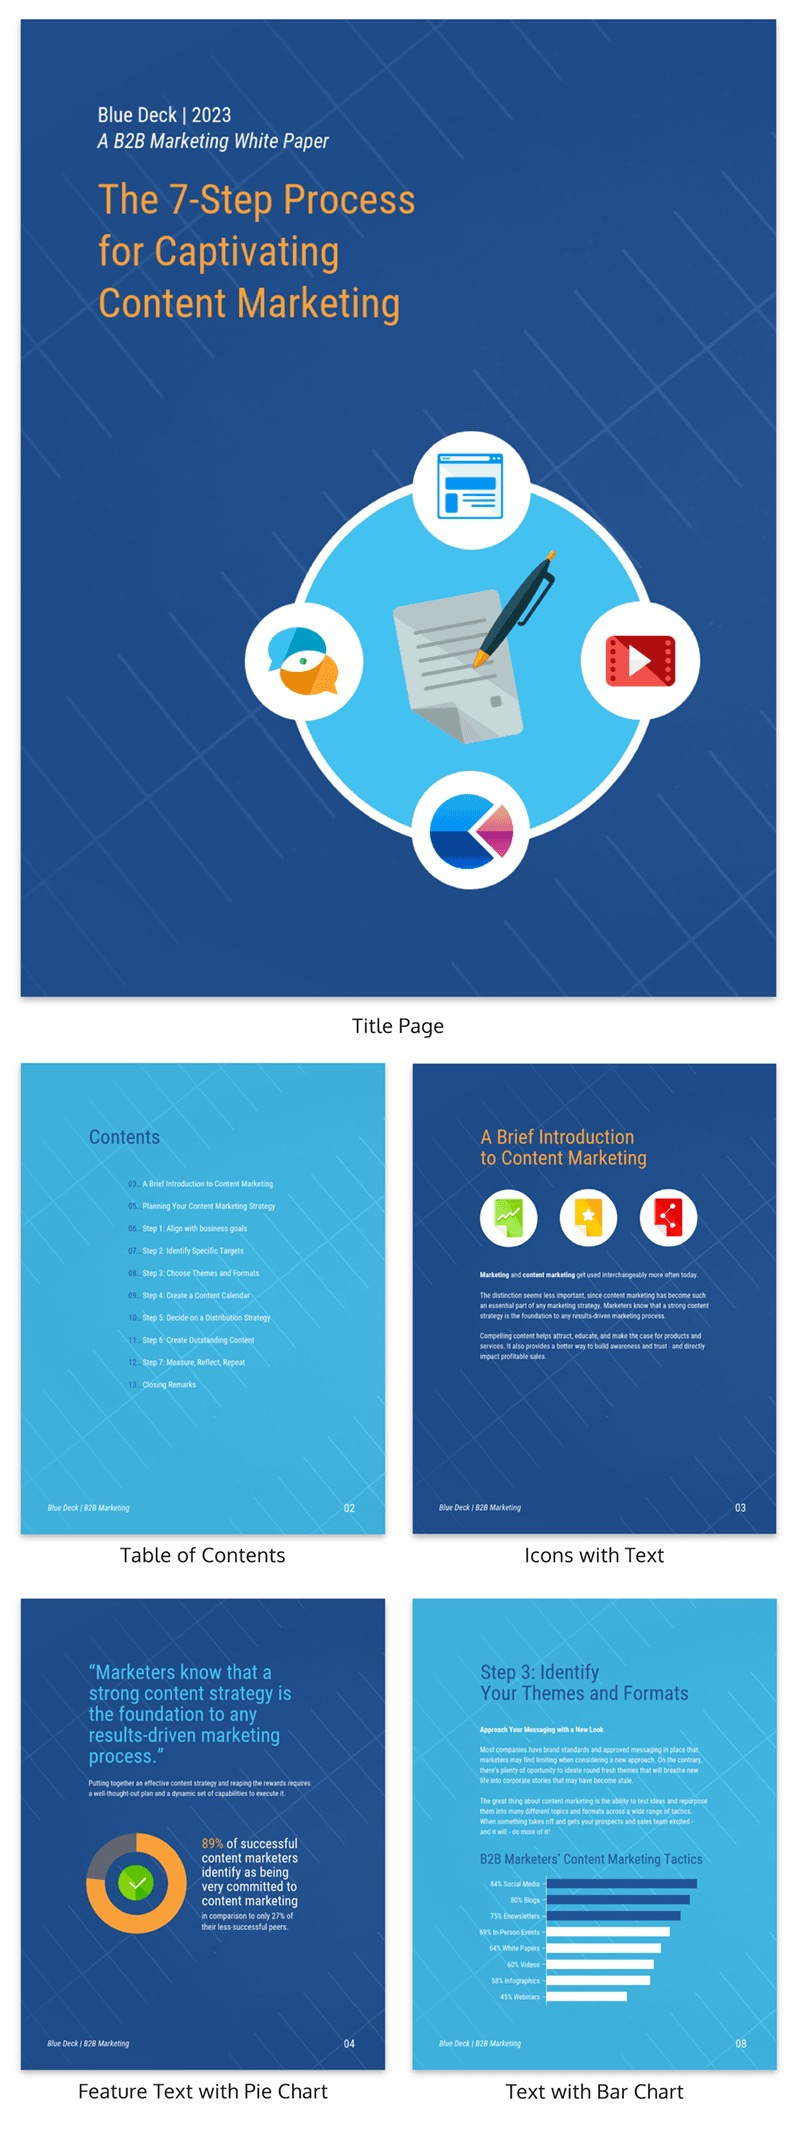 B2B Content Marketing White Paper Examples